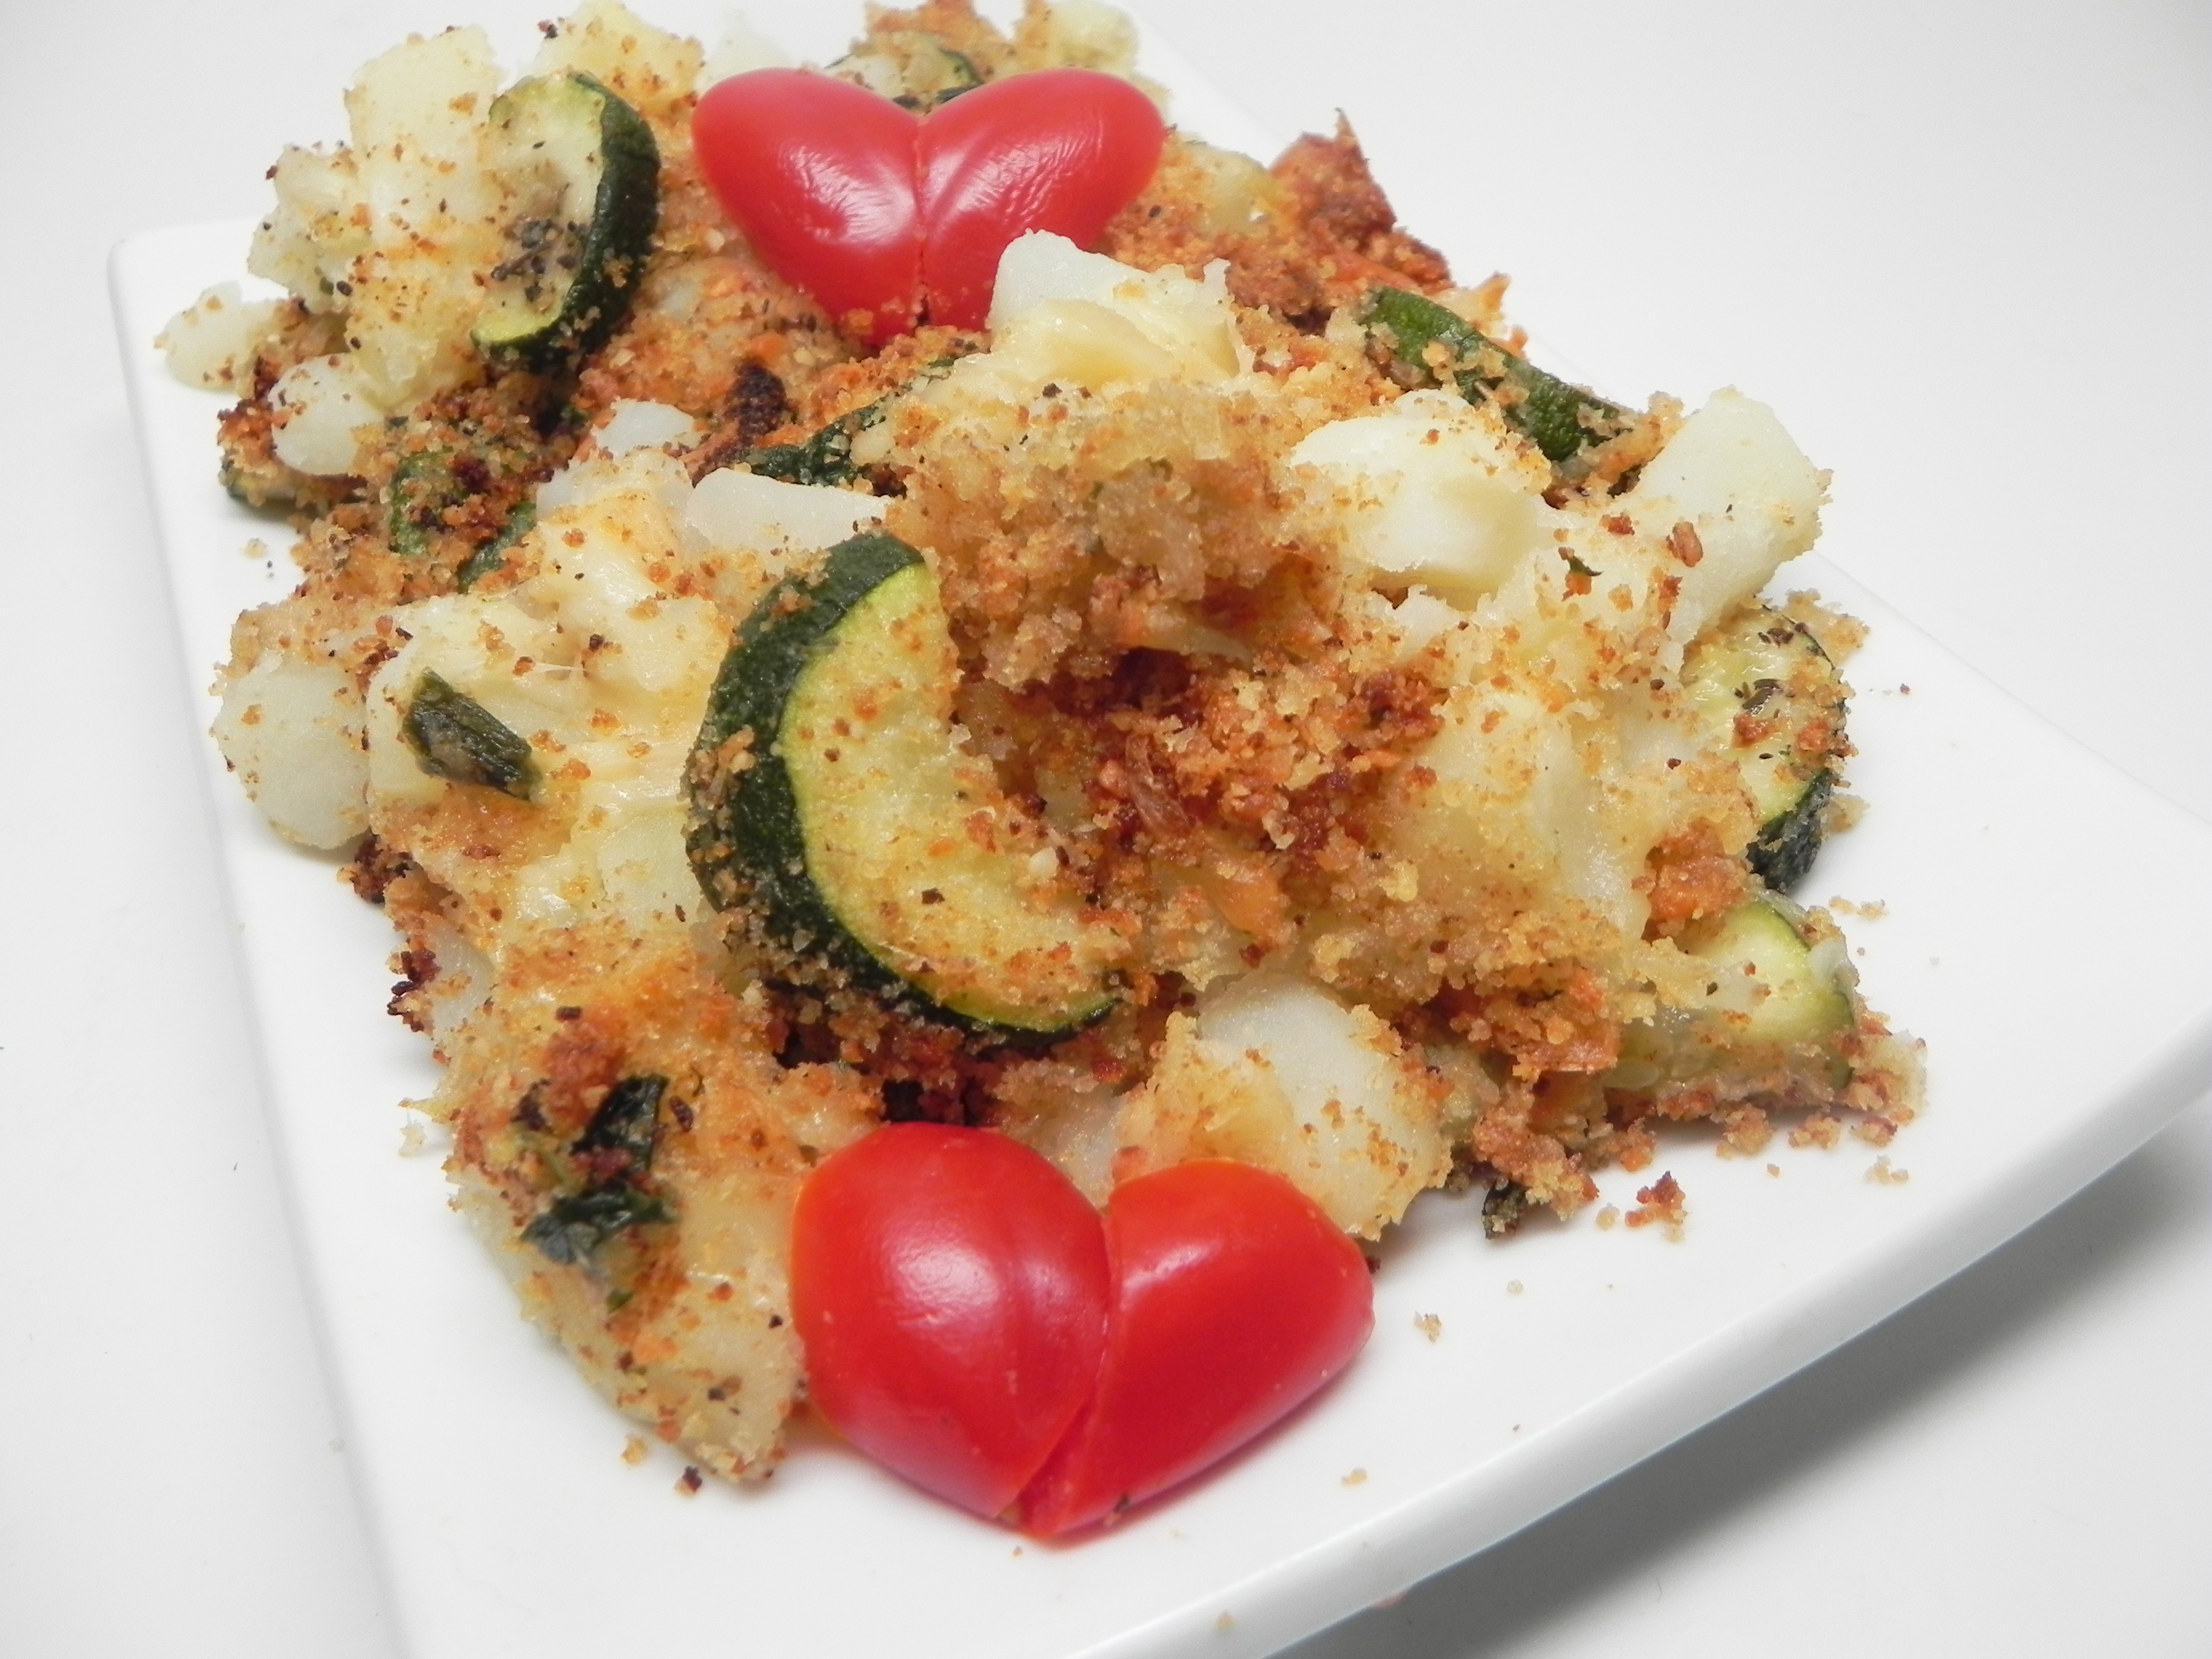 Diced Potato Casserole with Vegetables